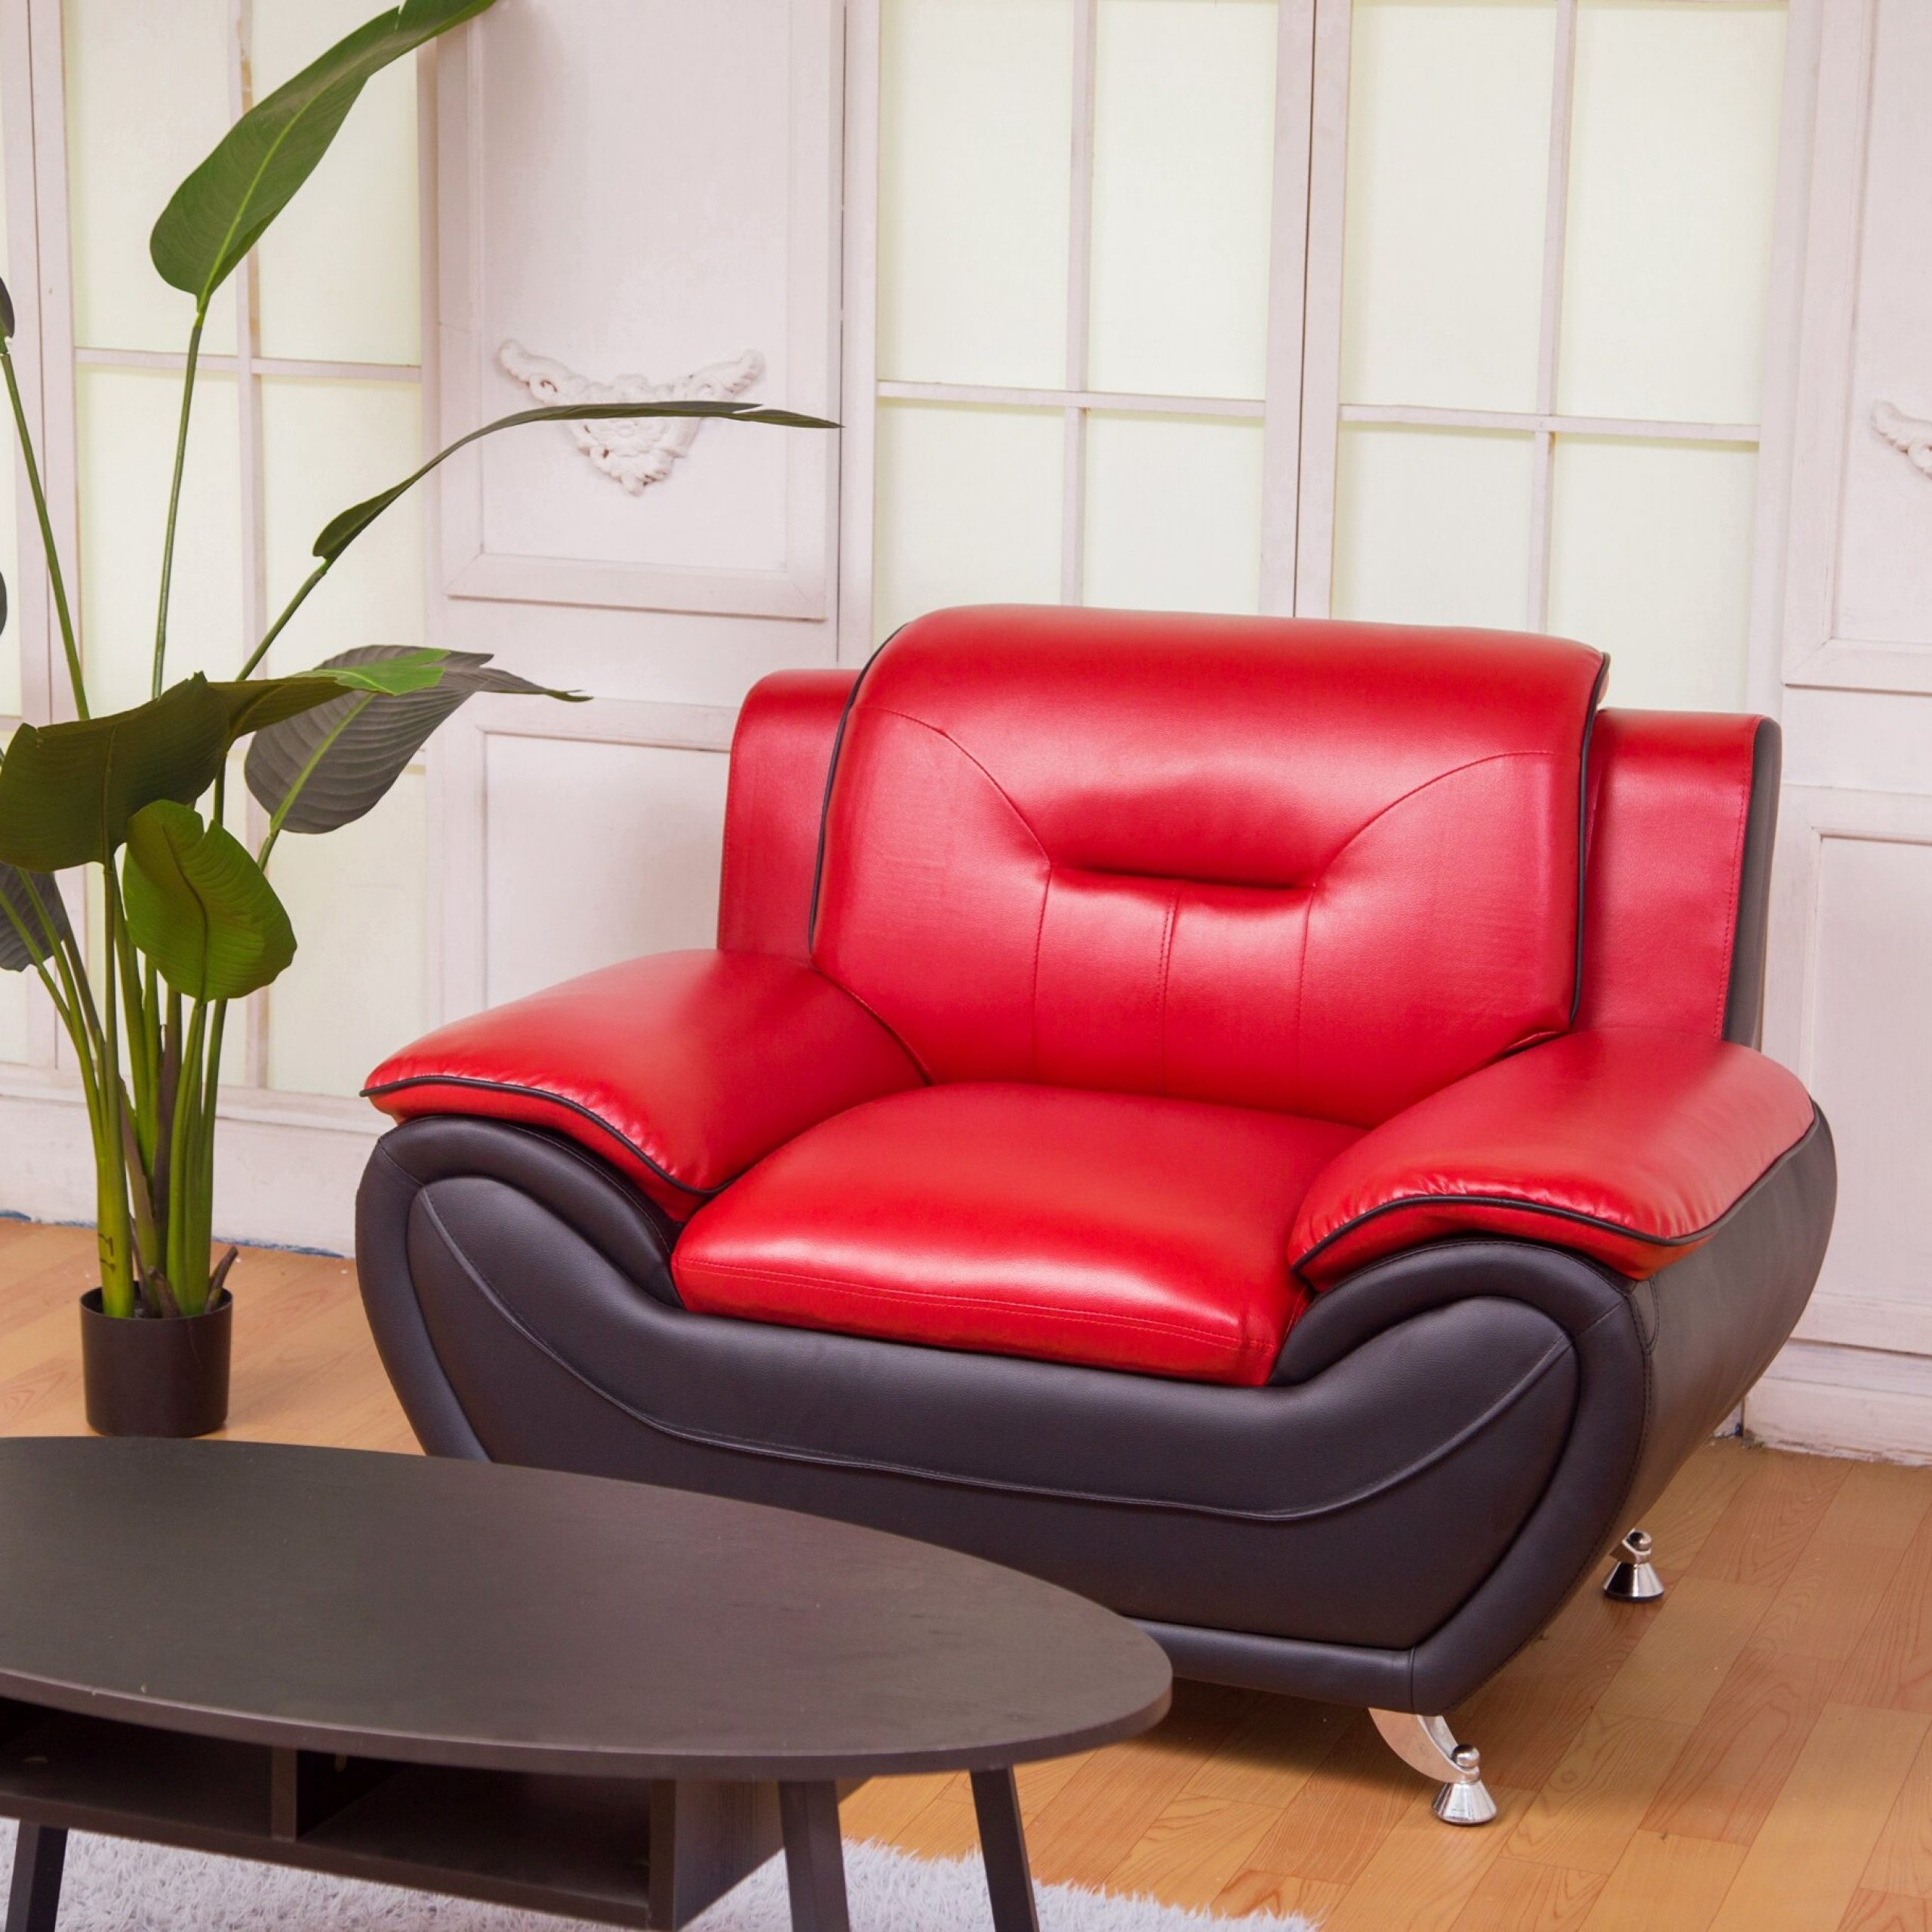 """Stclair 48"""" W Faux Leather Club Chair Pertaining To Montenegro Faux Leather Club Chairs (View 3 of 15)"""